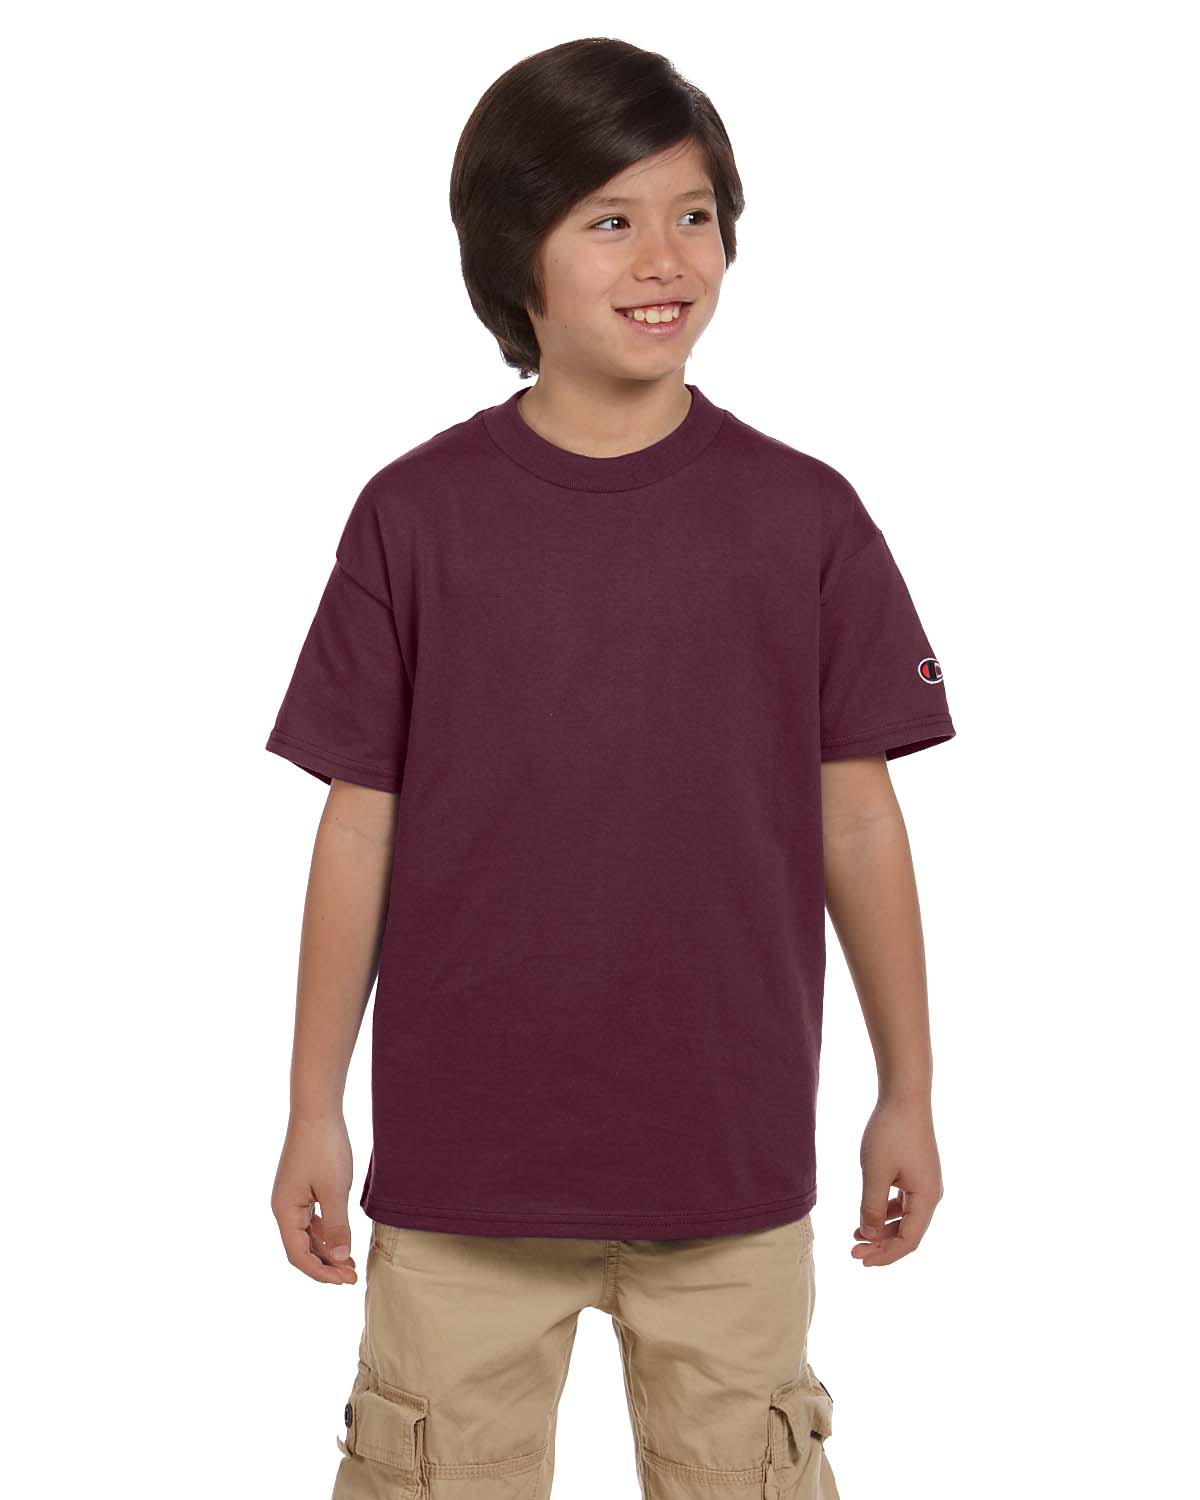 Champion Youth 6.1 Oz. Short-Sleeve T-Shirt